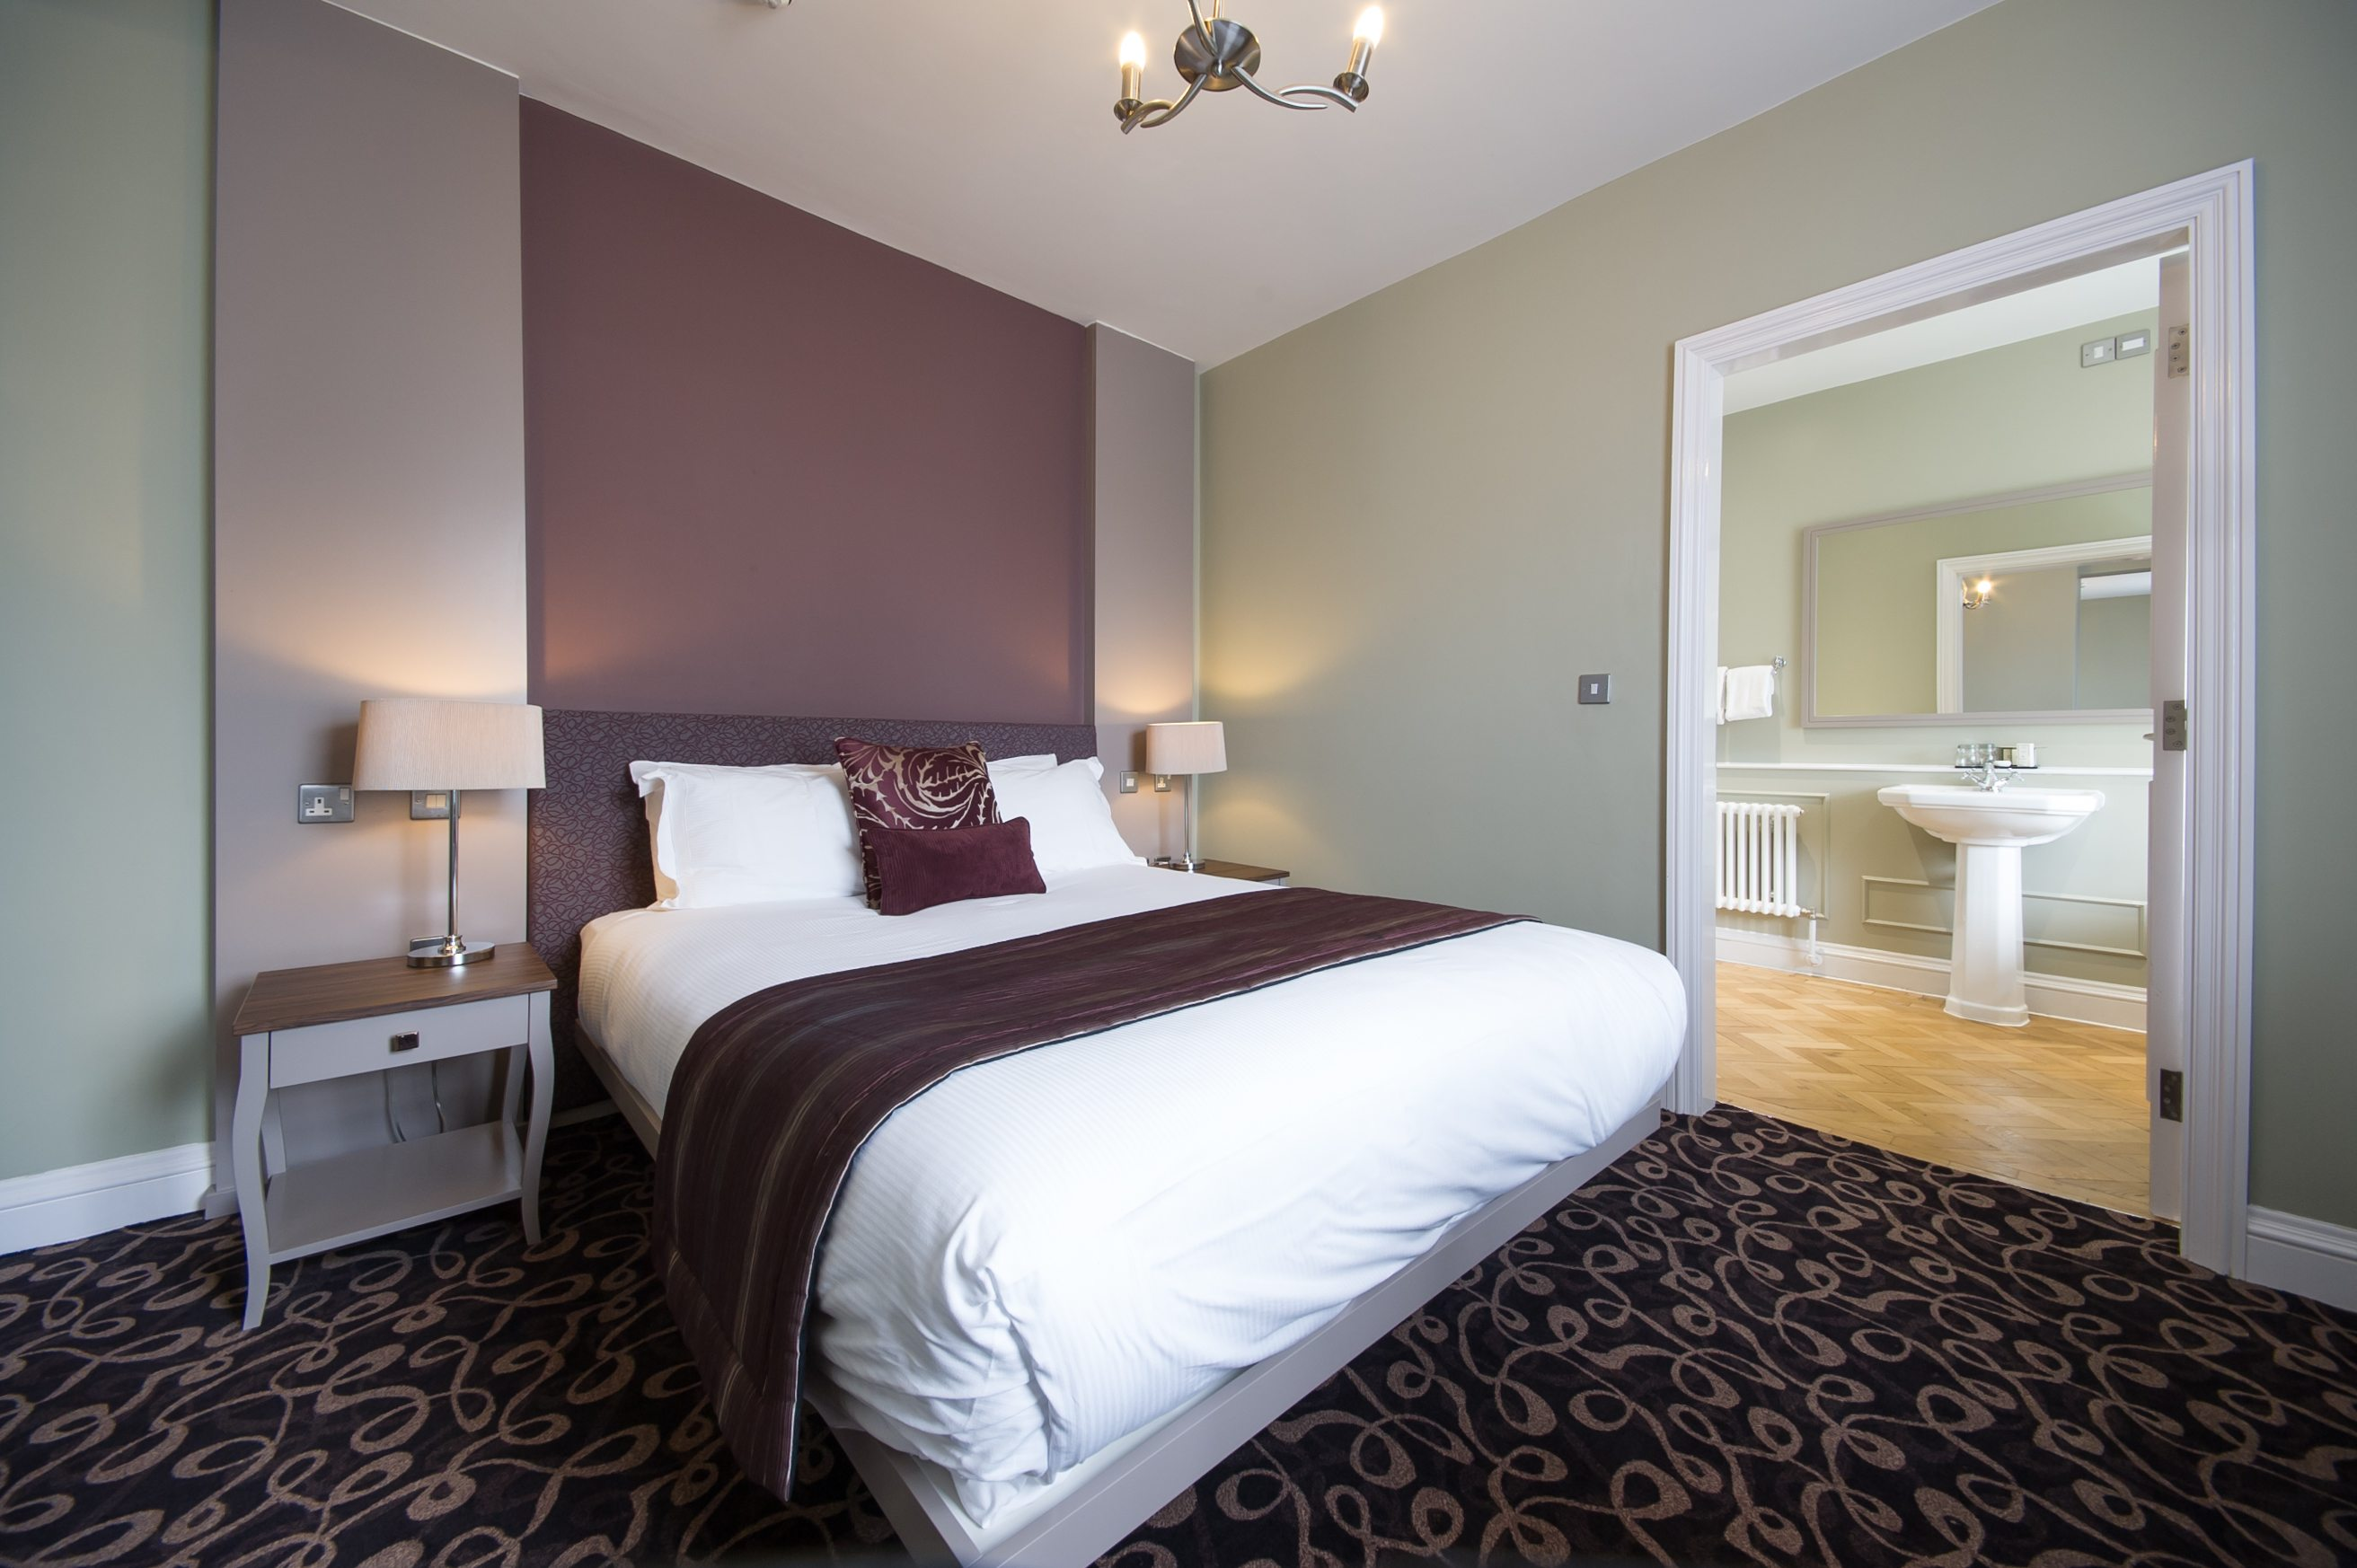 Halifax Hall boutique hotel in Sheffield